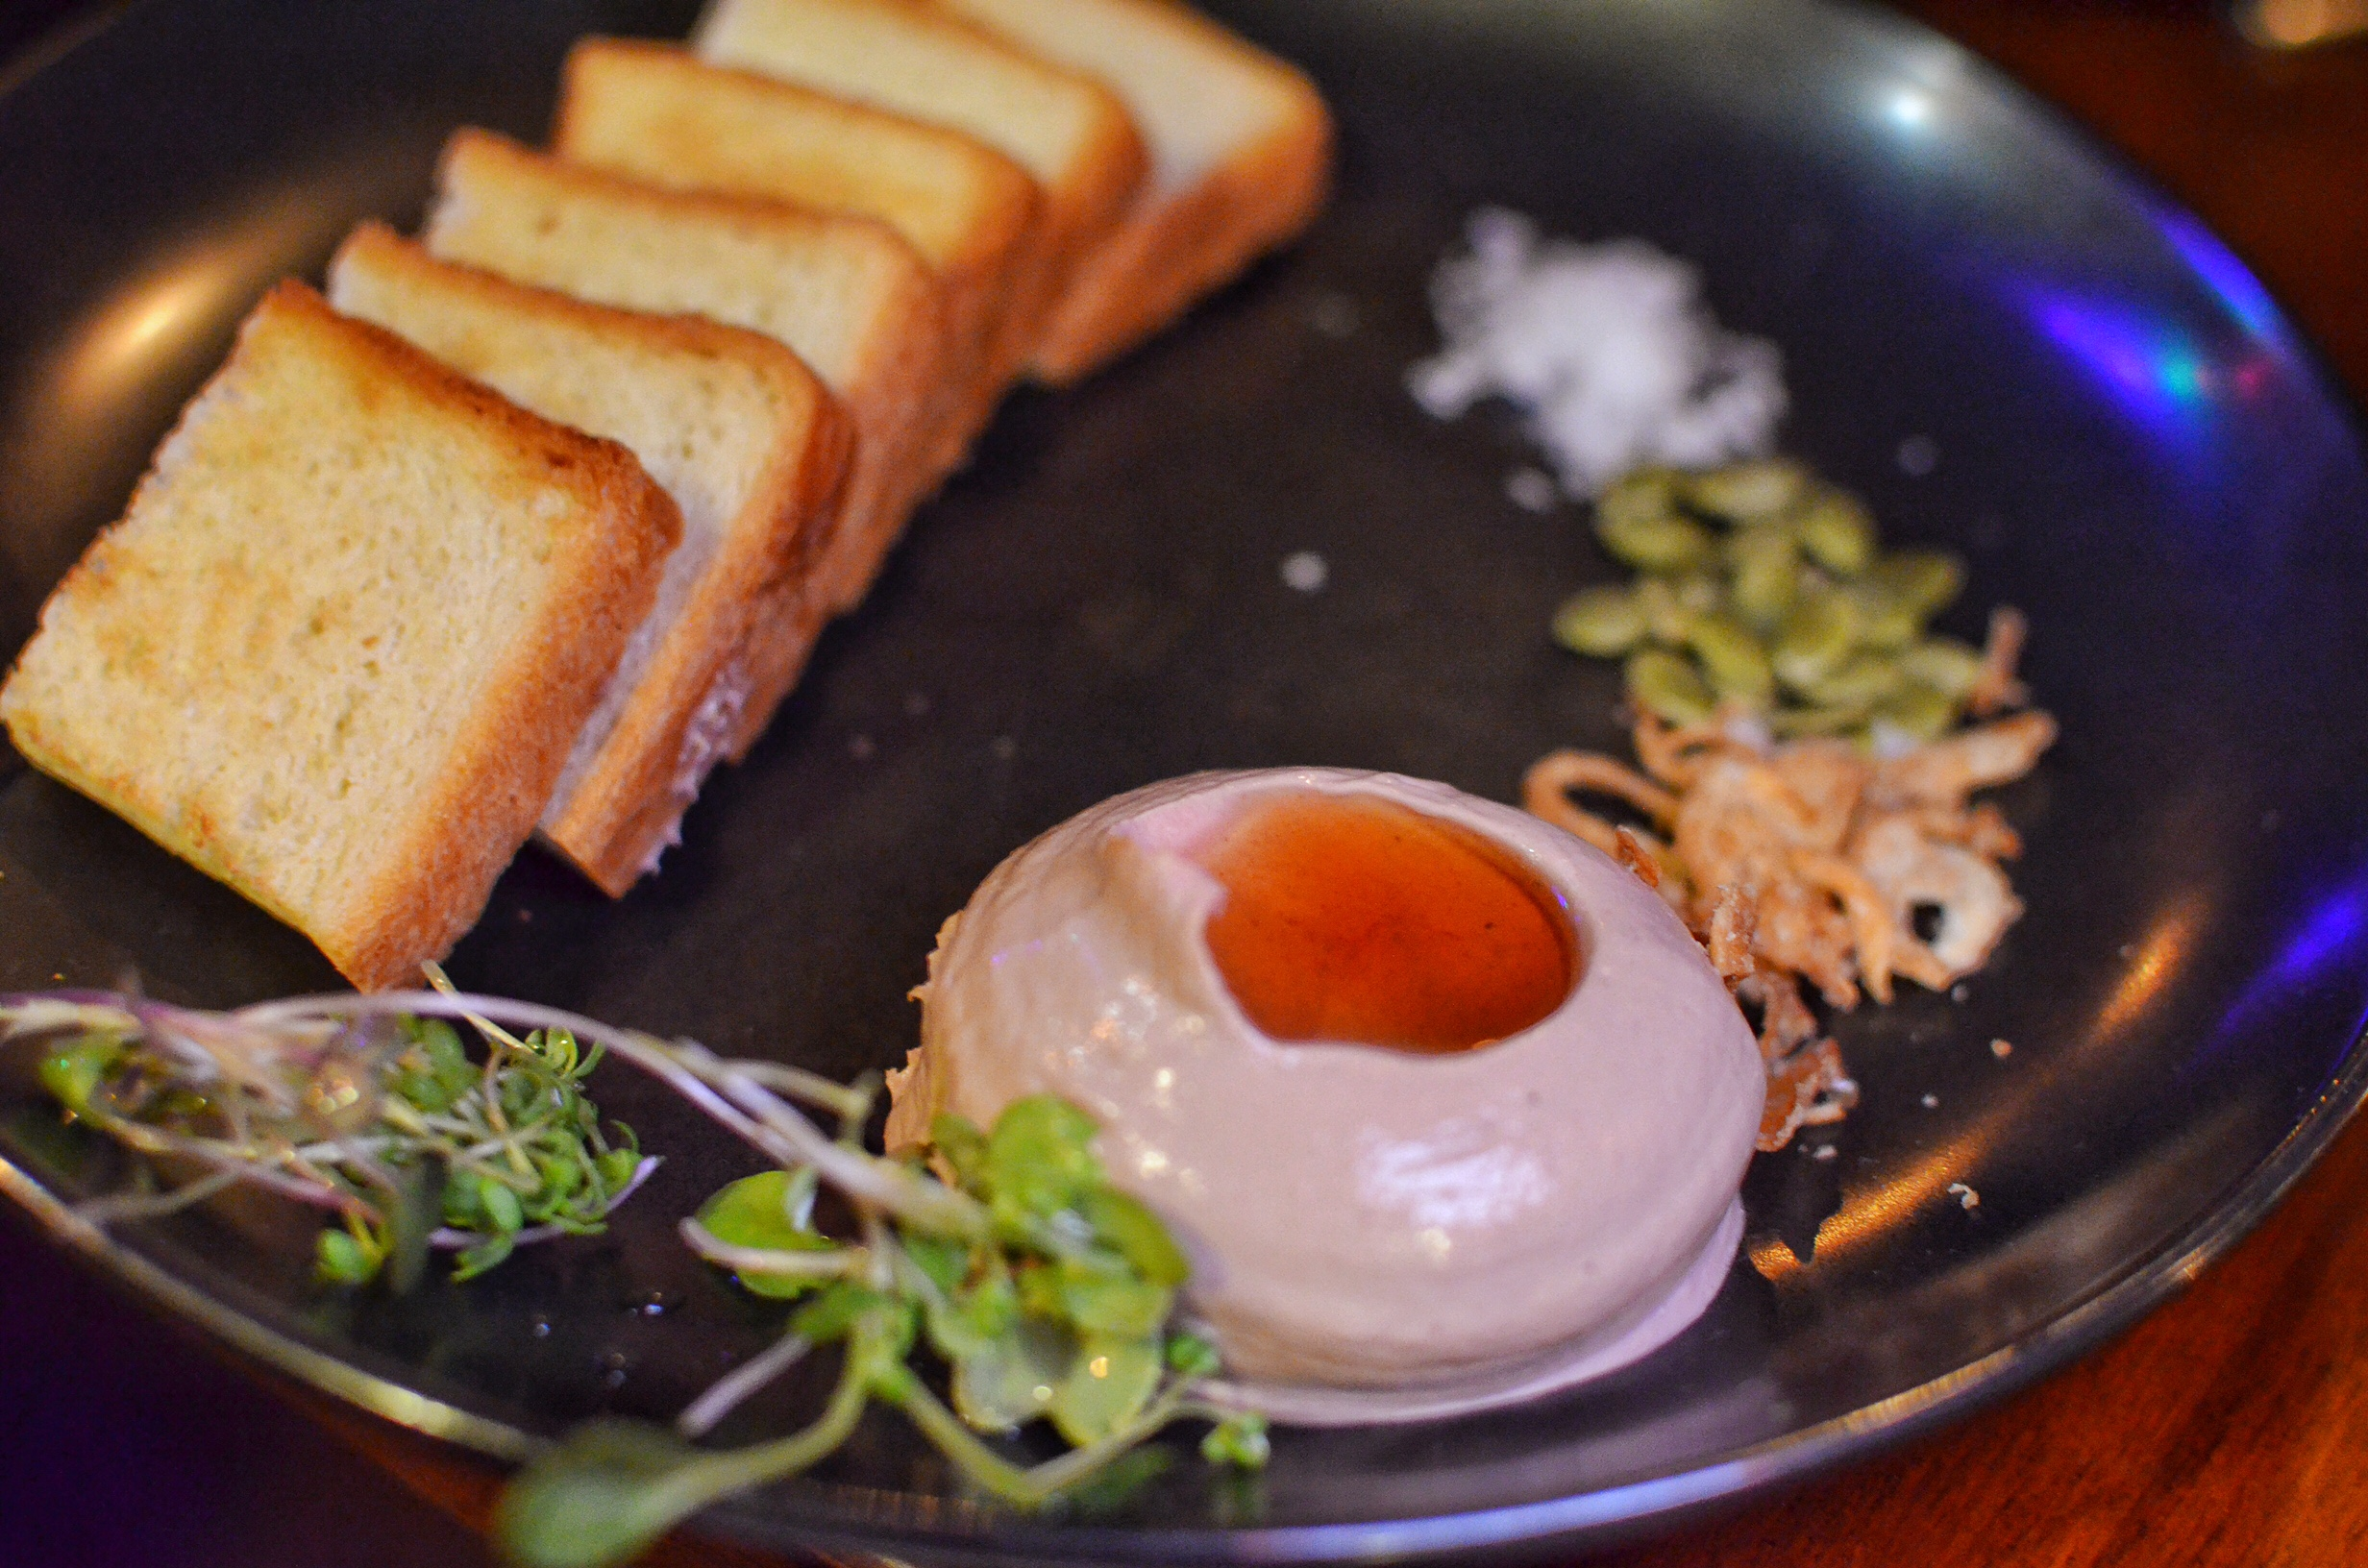 Chicken liver mousse, maple syrup and milk bread